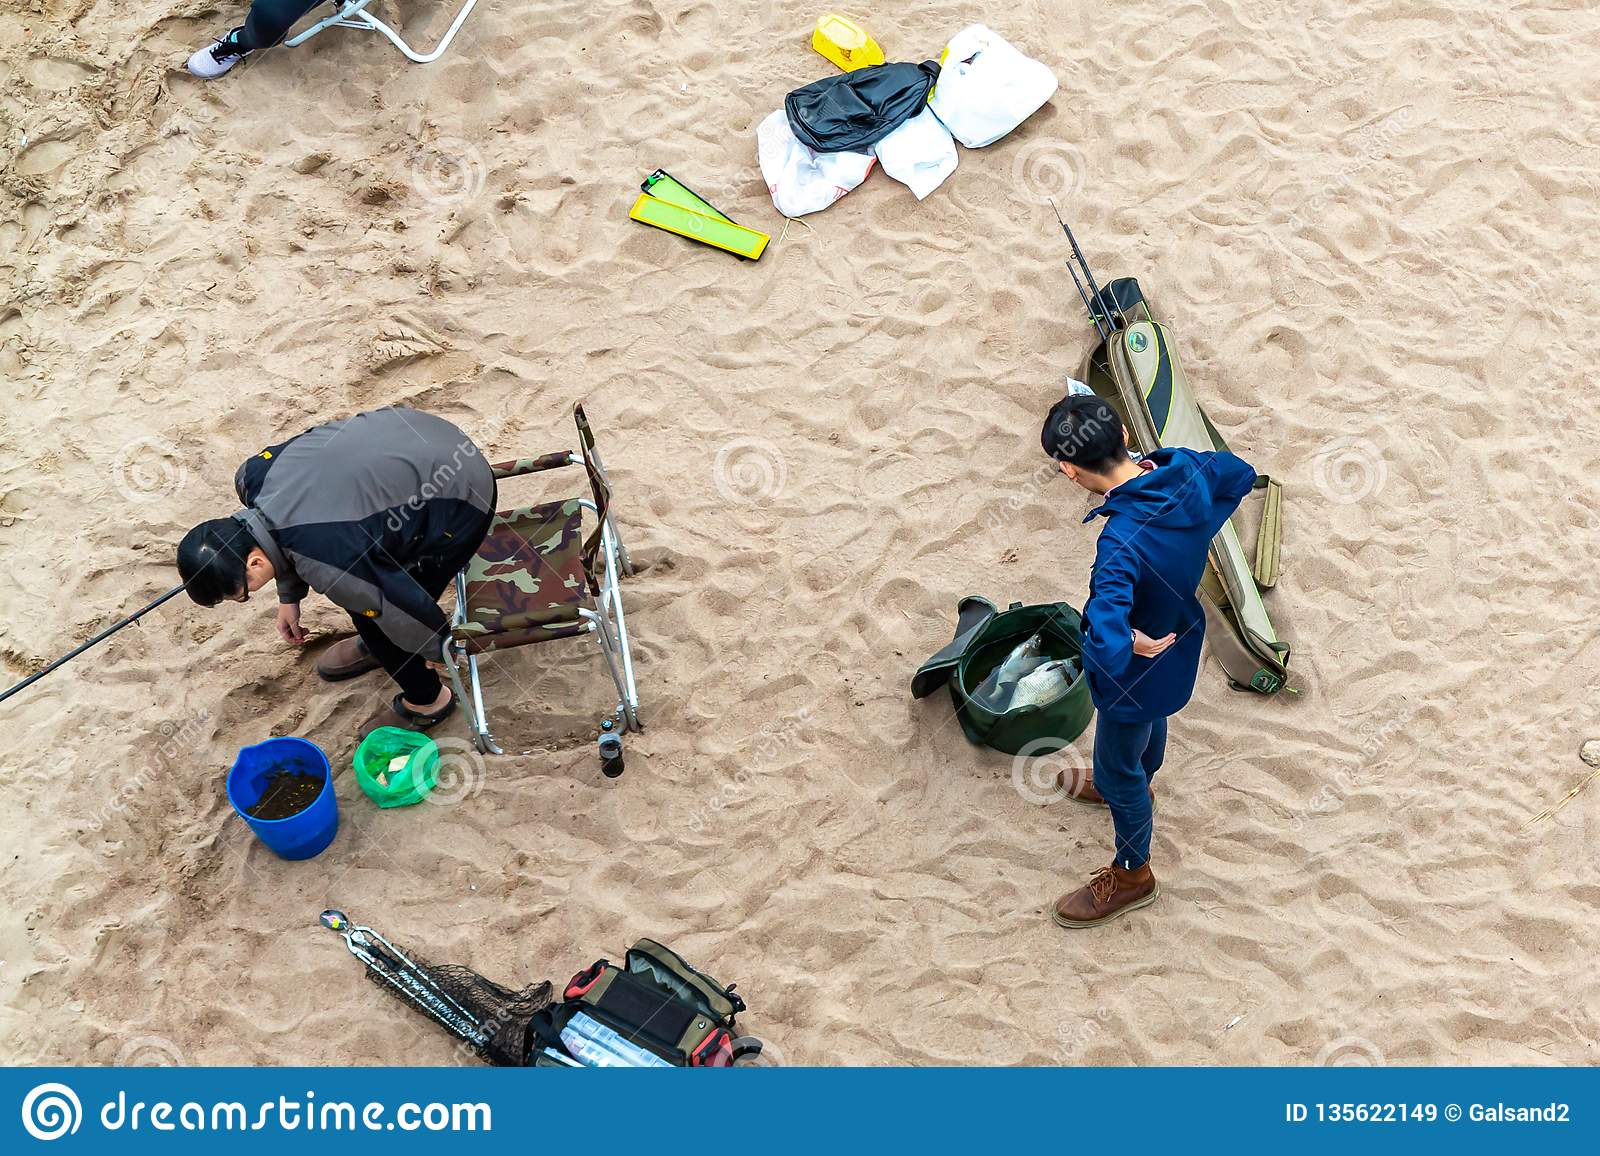 St. Petersburg, Russia - July 10, 2018: Group of fishermen are fishing on the sandy shores of the Gulf of Finland under the bridge